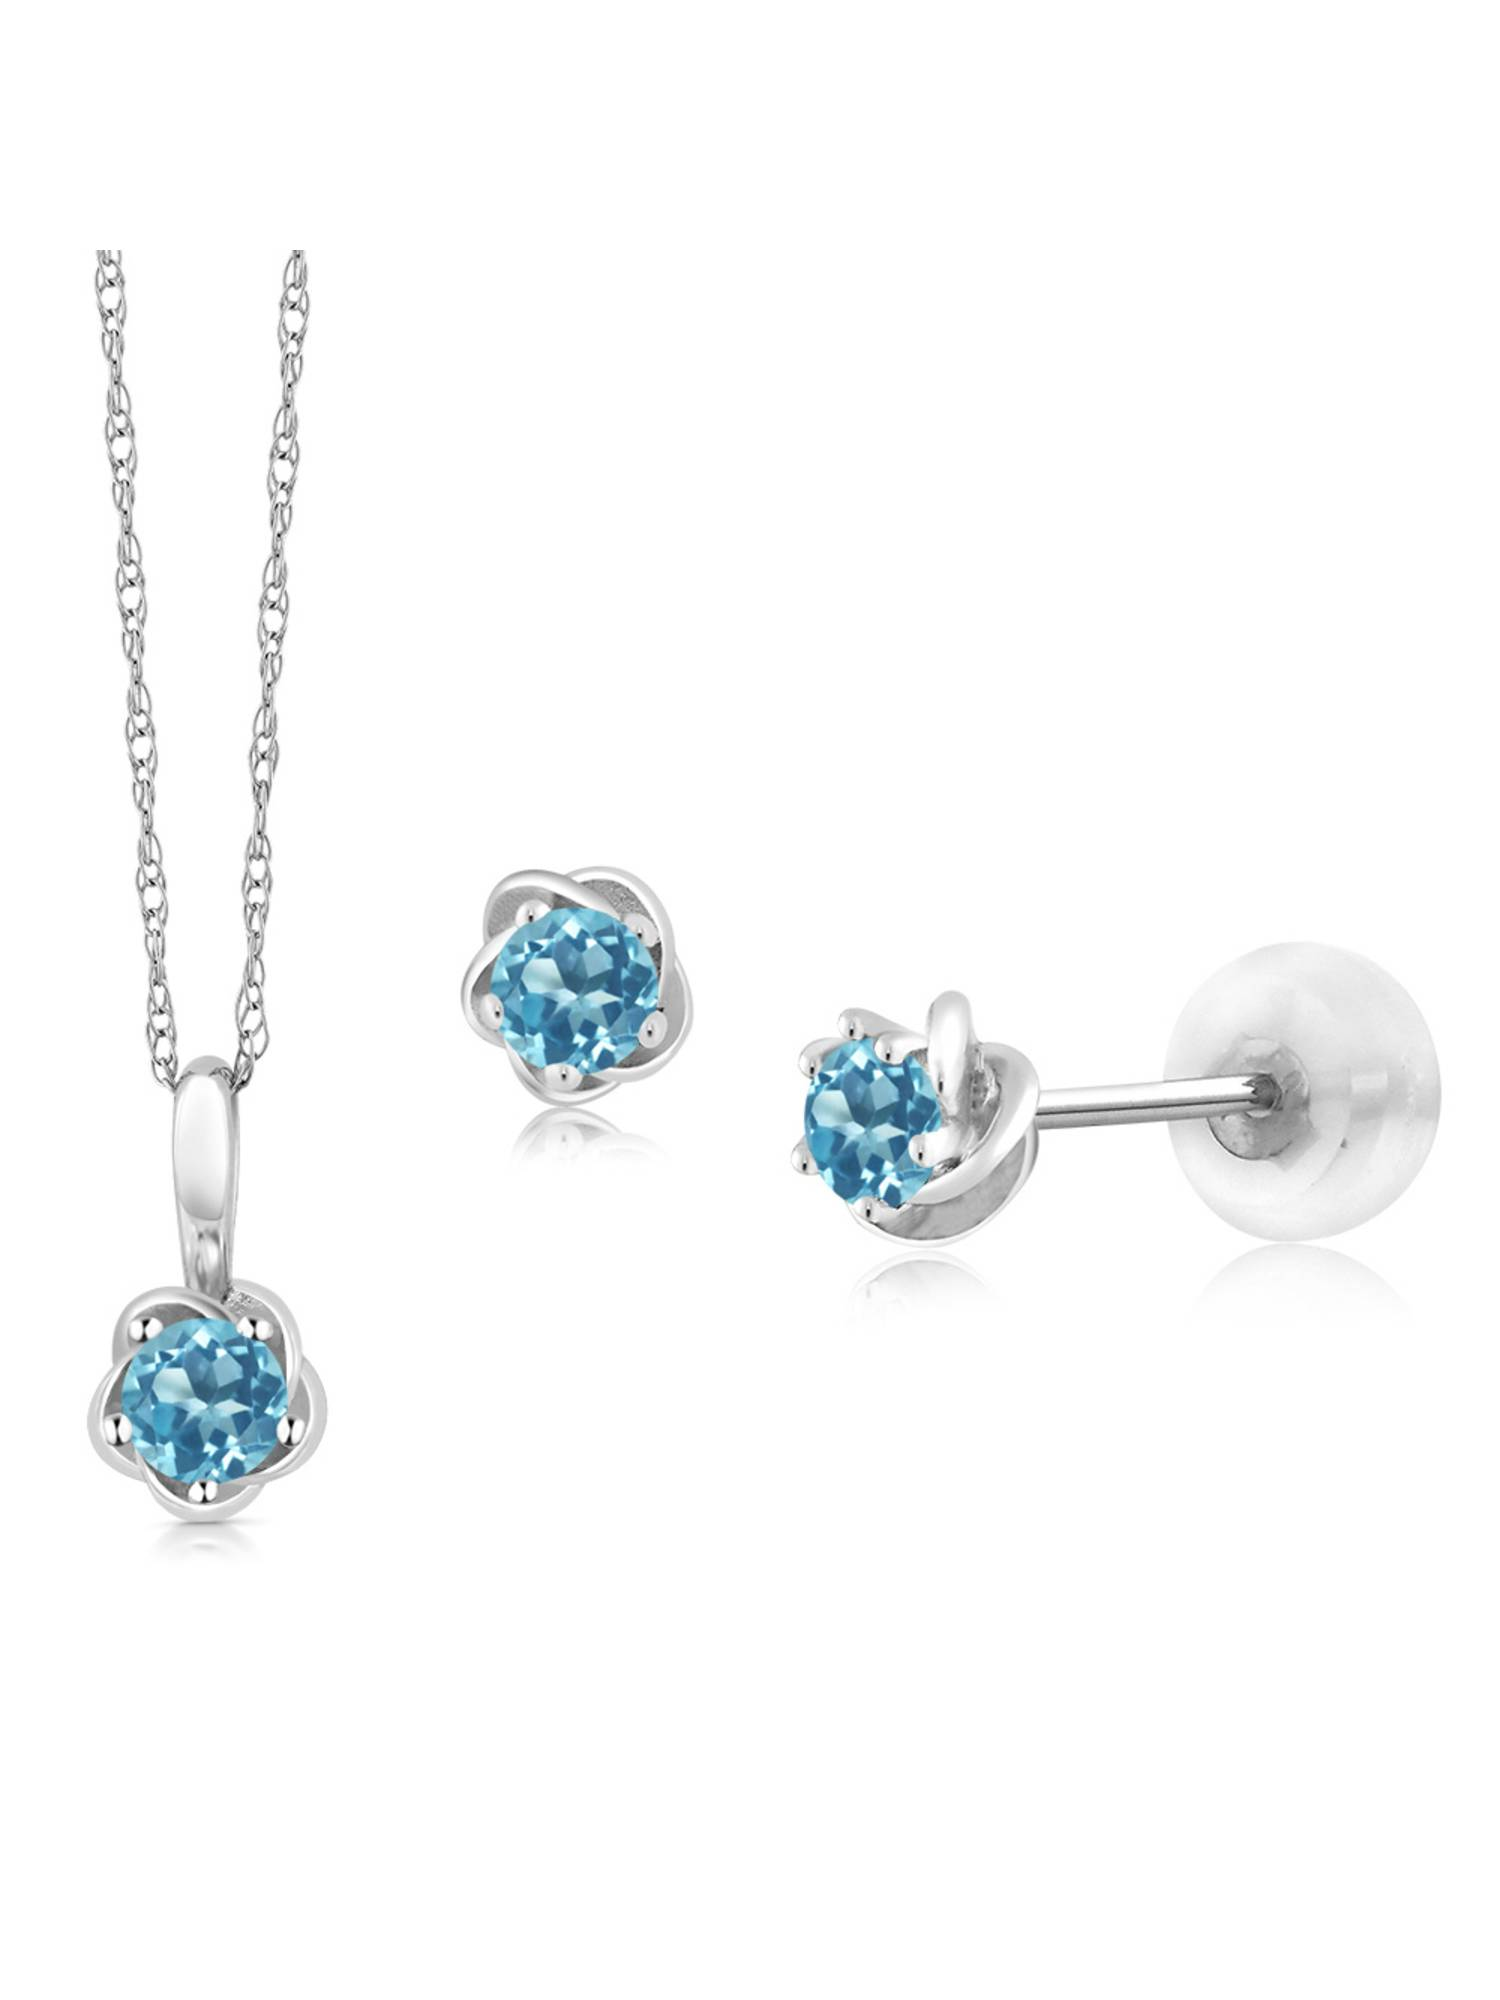 10K White Gold 0.50 Ct Round Swiss Blue Topaz Pendant Earrings Set with Chain by